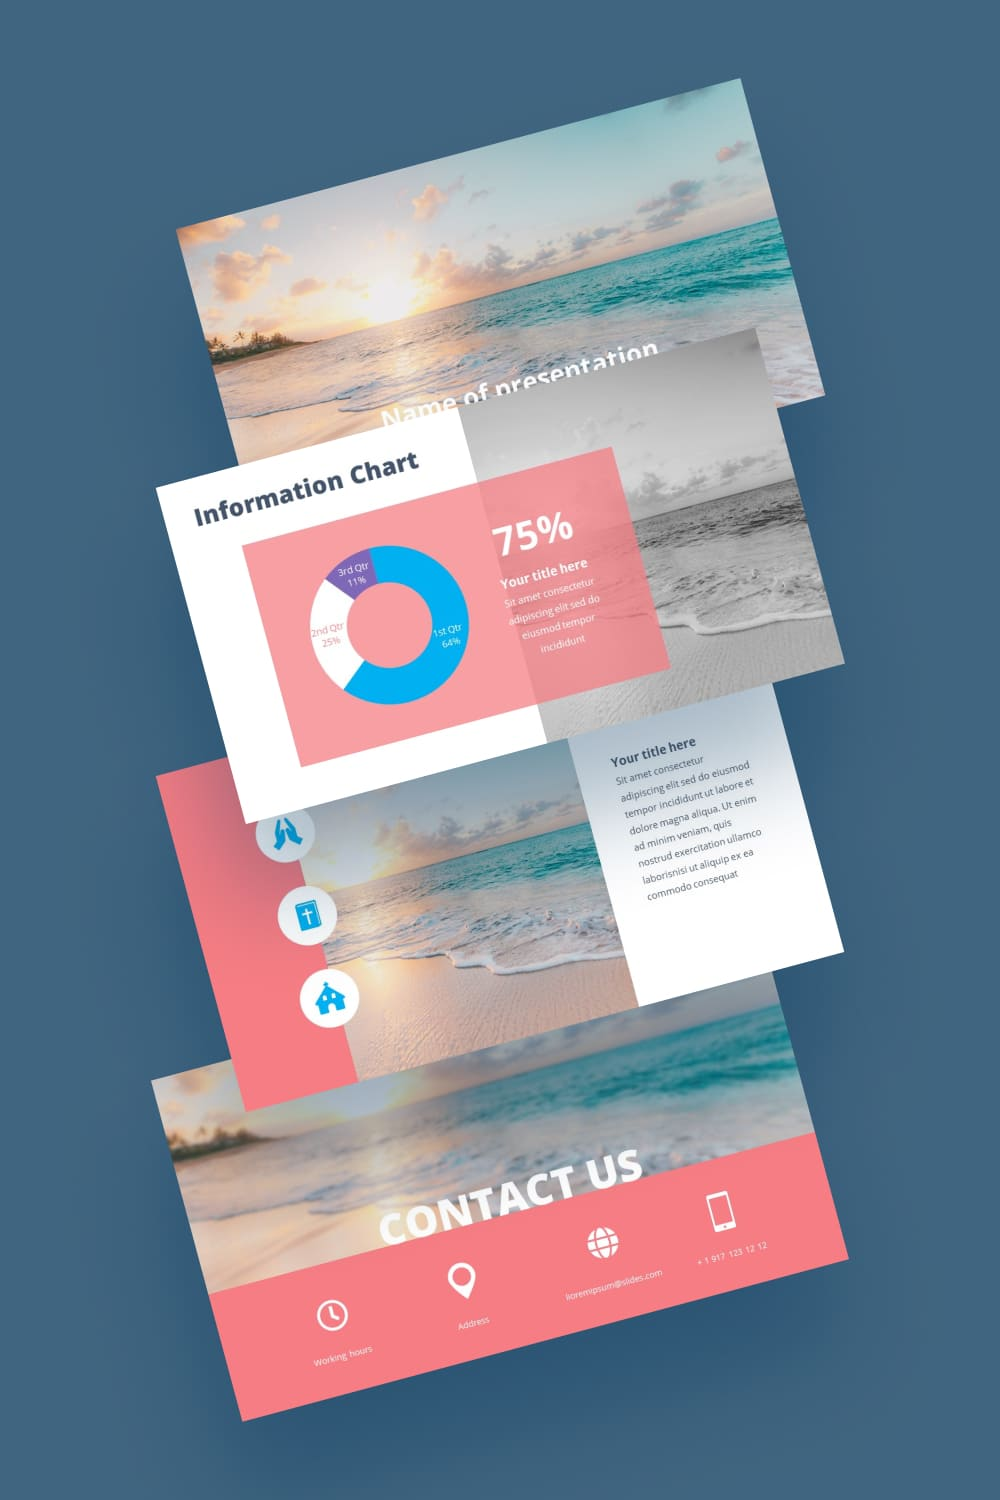 Free Summer Powerpoint Worship Background. Delicate pattern in pastel colors. It seems to calm down on its waves.